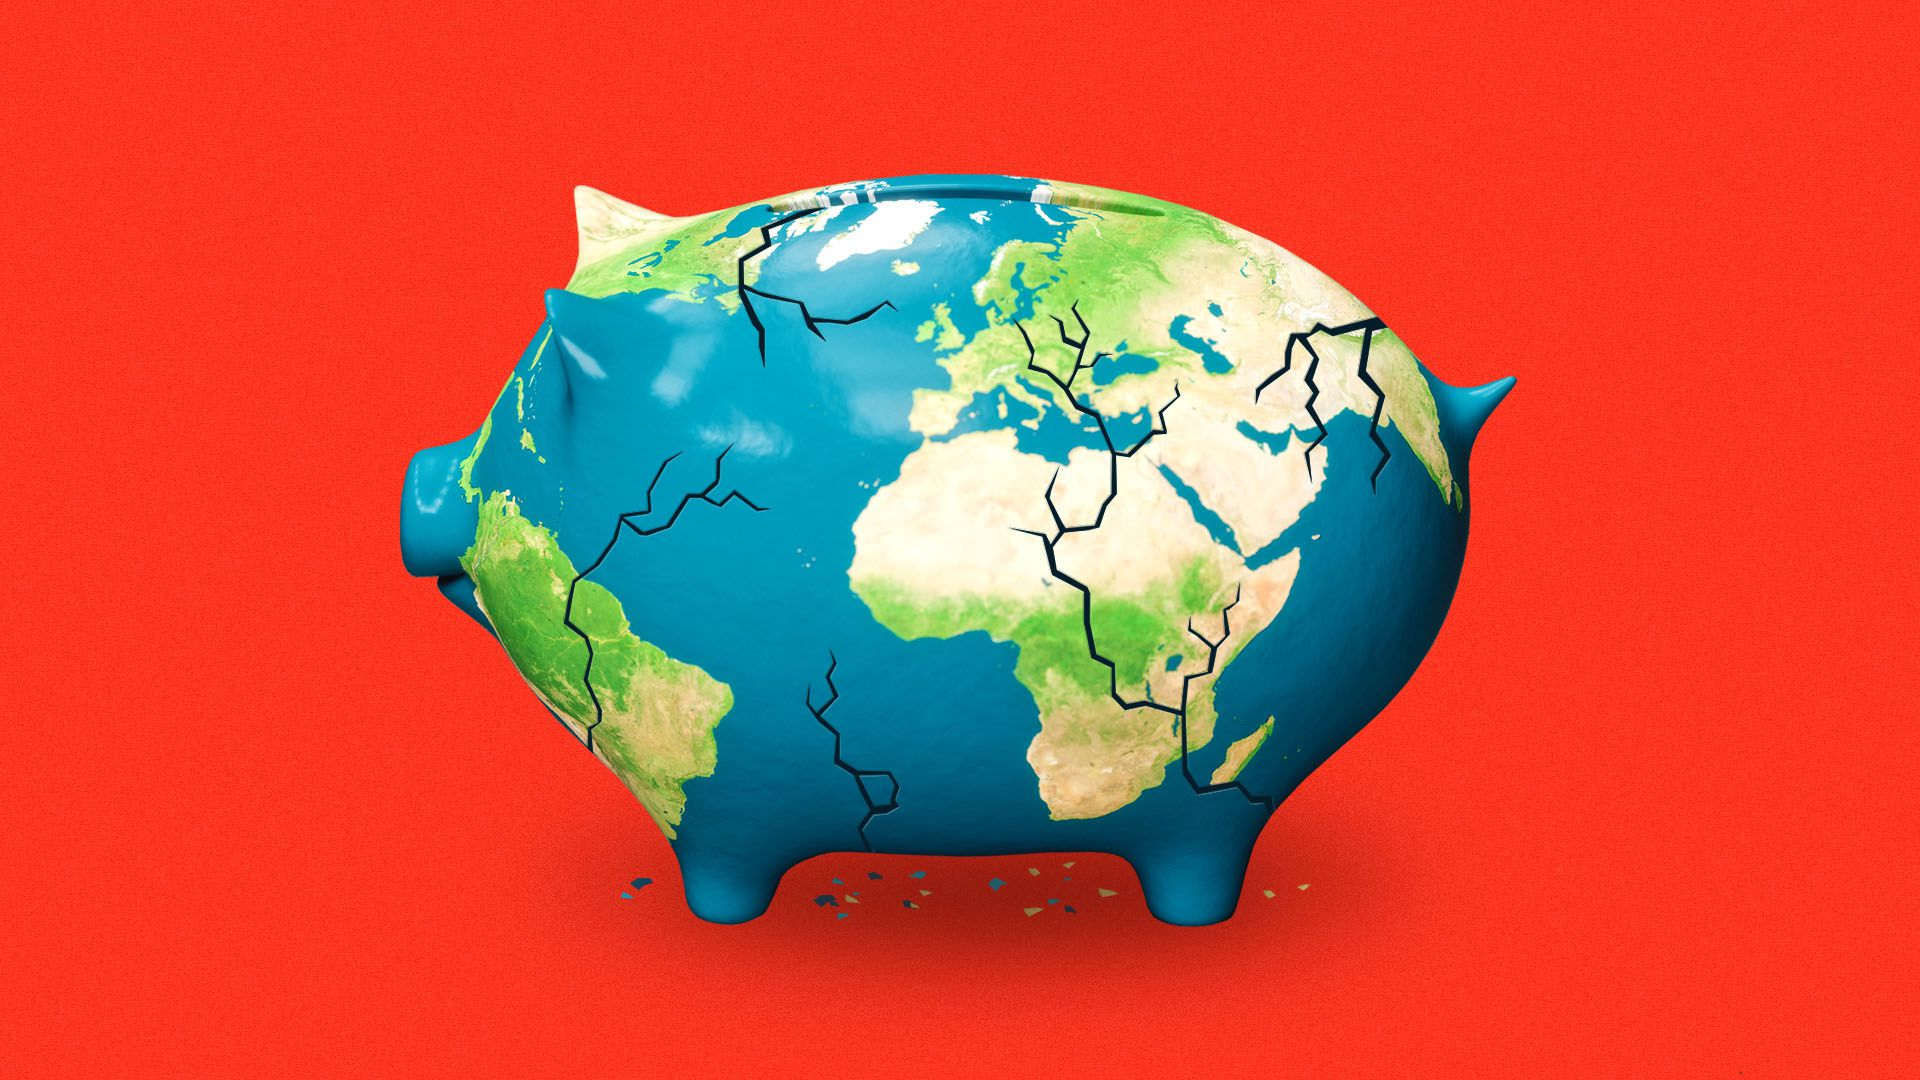 Illustration of a cracked piggy bank shaped like the earth.